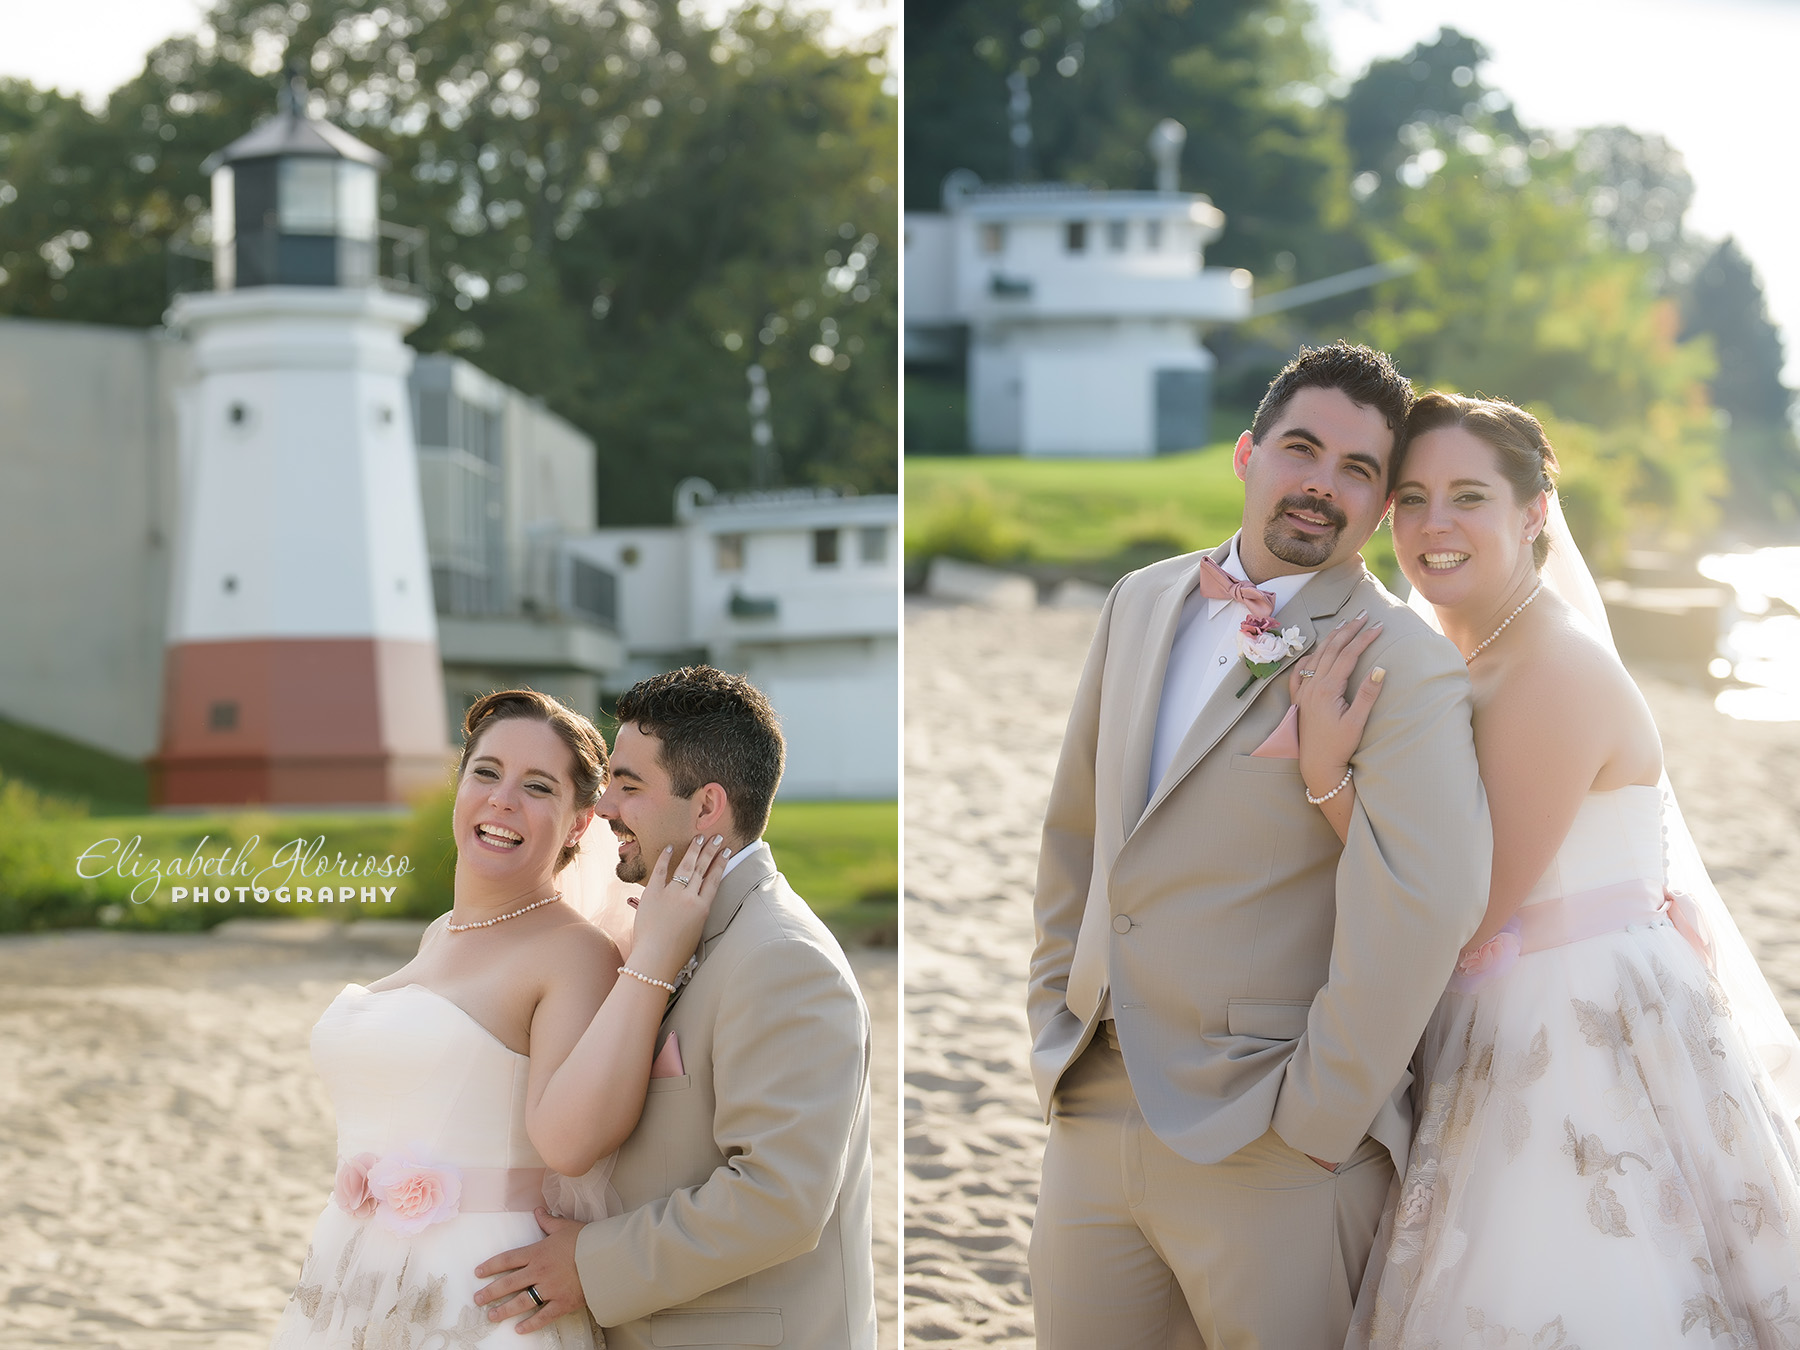 Vermilion_wedding_Glorioso Photography_1034